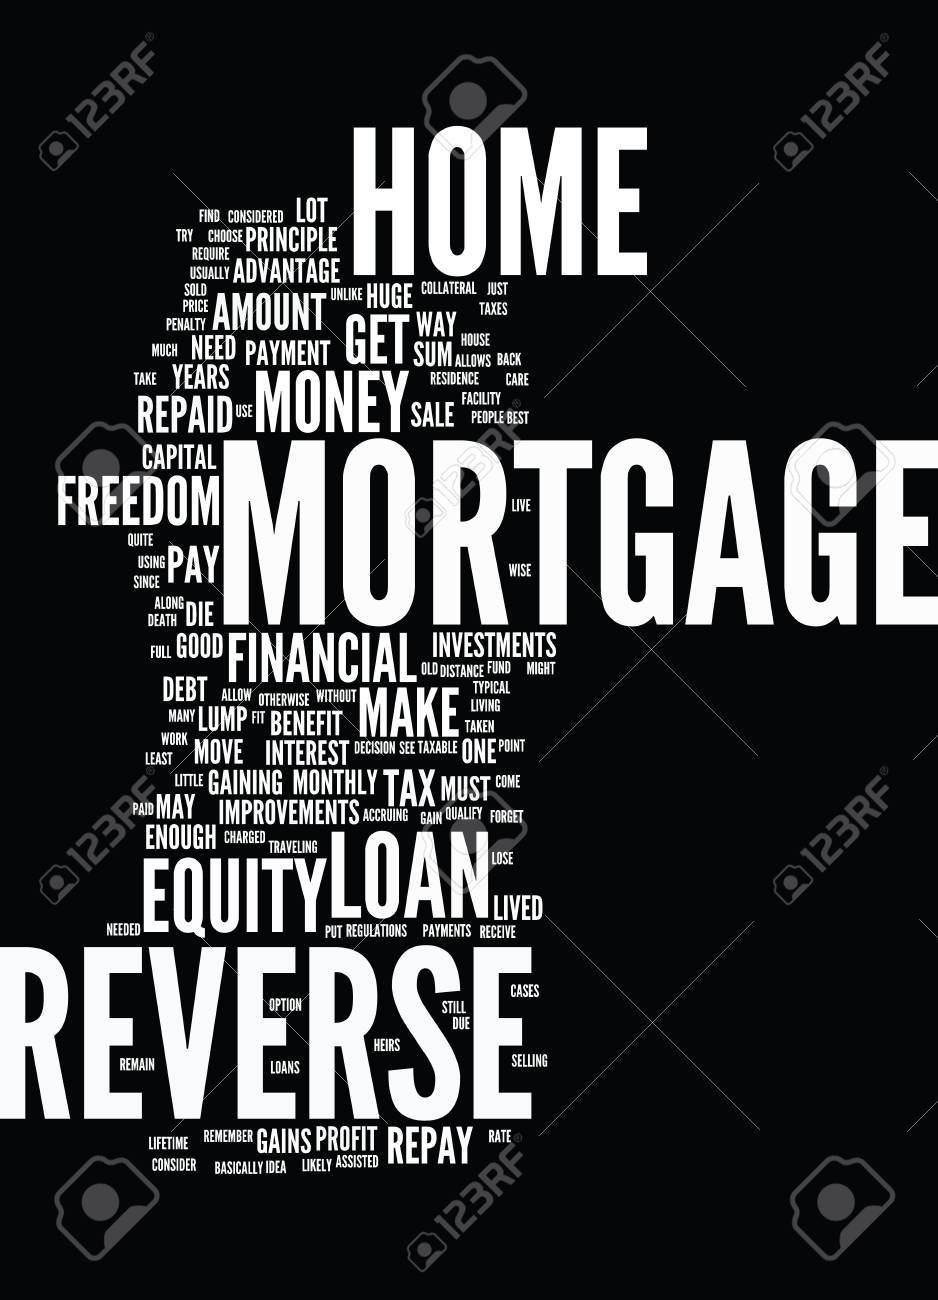 10 Gorgeous Is A Reverse Mortgage A Good Idea financial freedom reverse mortgage forget capital gains tax text 1 2021